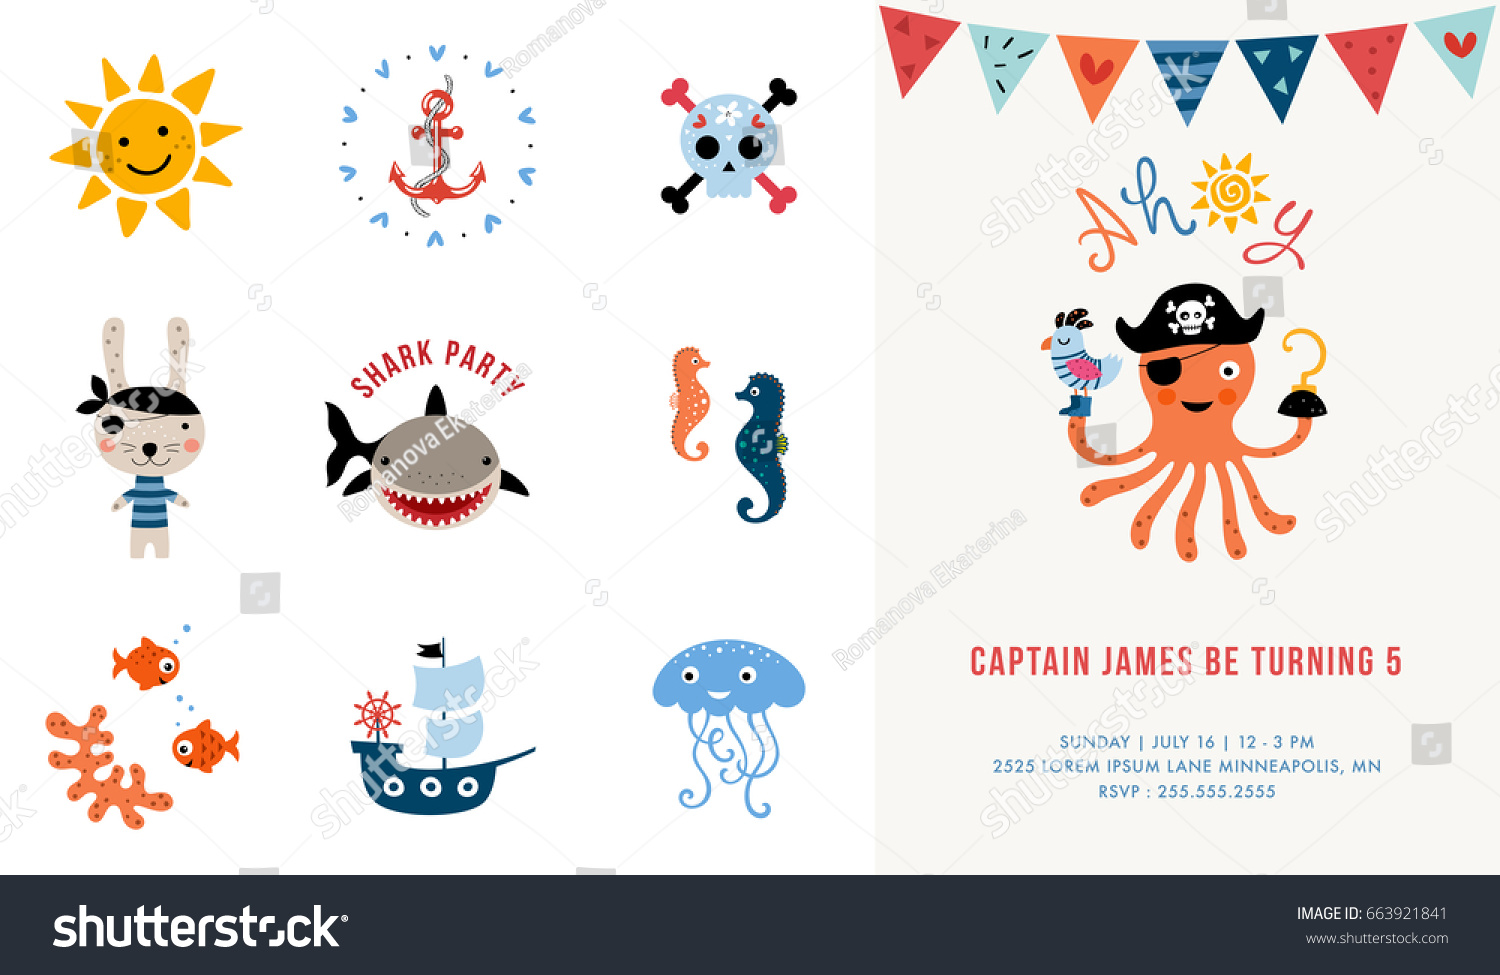 Pirate birthday invitation vector illustration stock vector pirate birthday invitation vector illustration stopboris